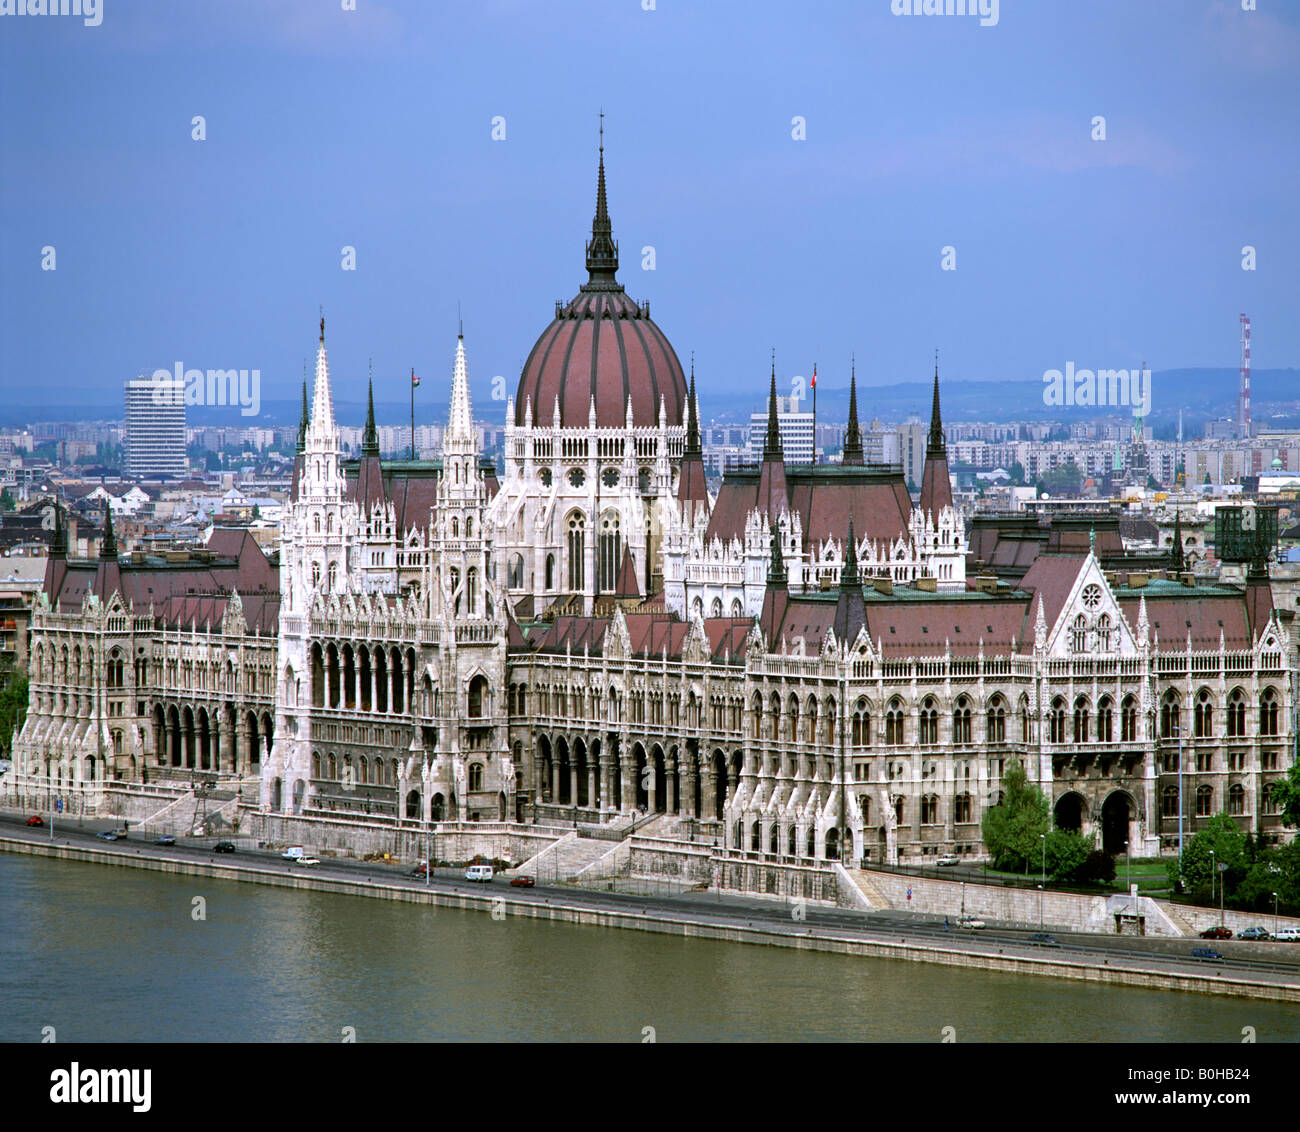 Parliament building along the Danube, Budapest, Hungary - Stock Image